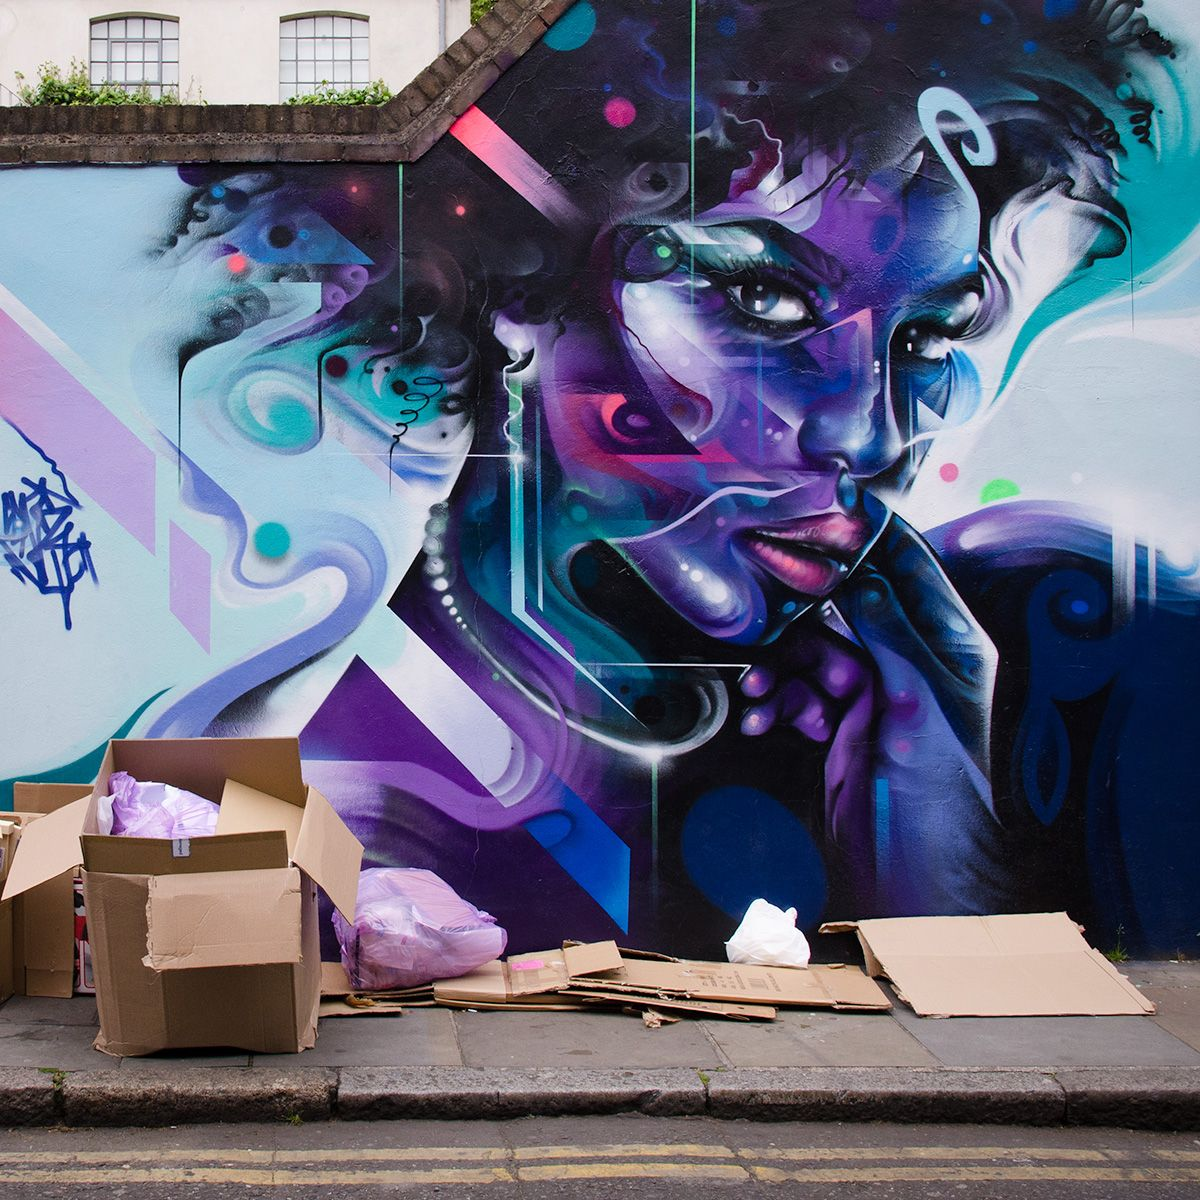 Abstract forms and purple tones blend together beautifully to form this vibrant portrait mural by artist mr cenz fashion street shoreditch london uk